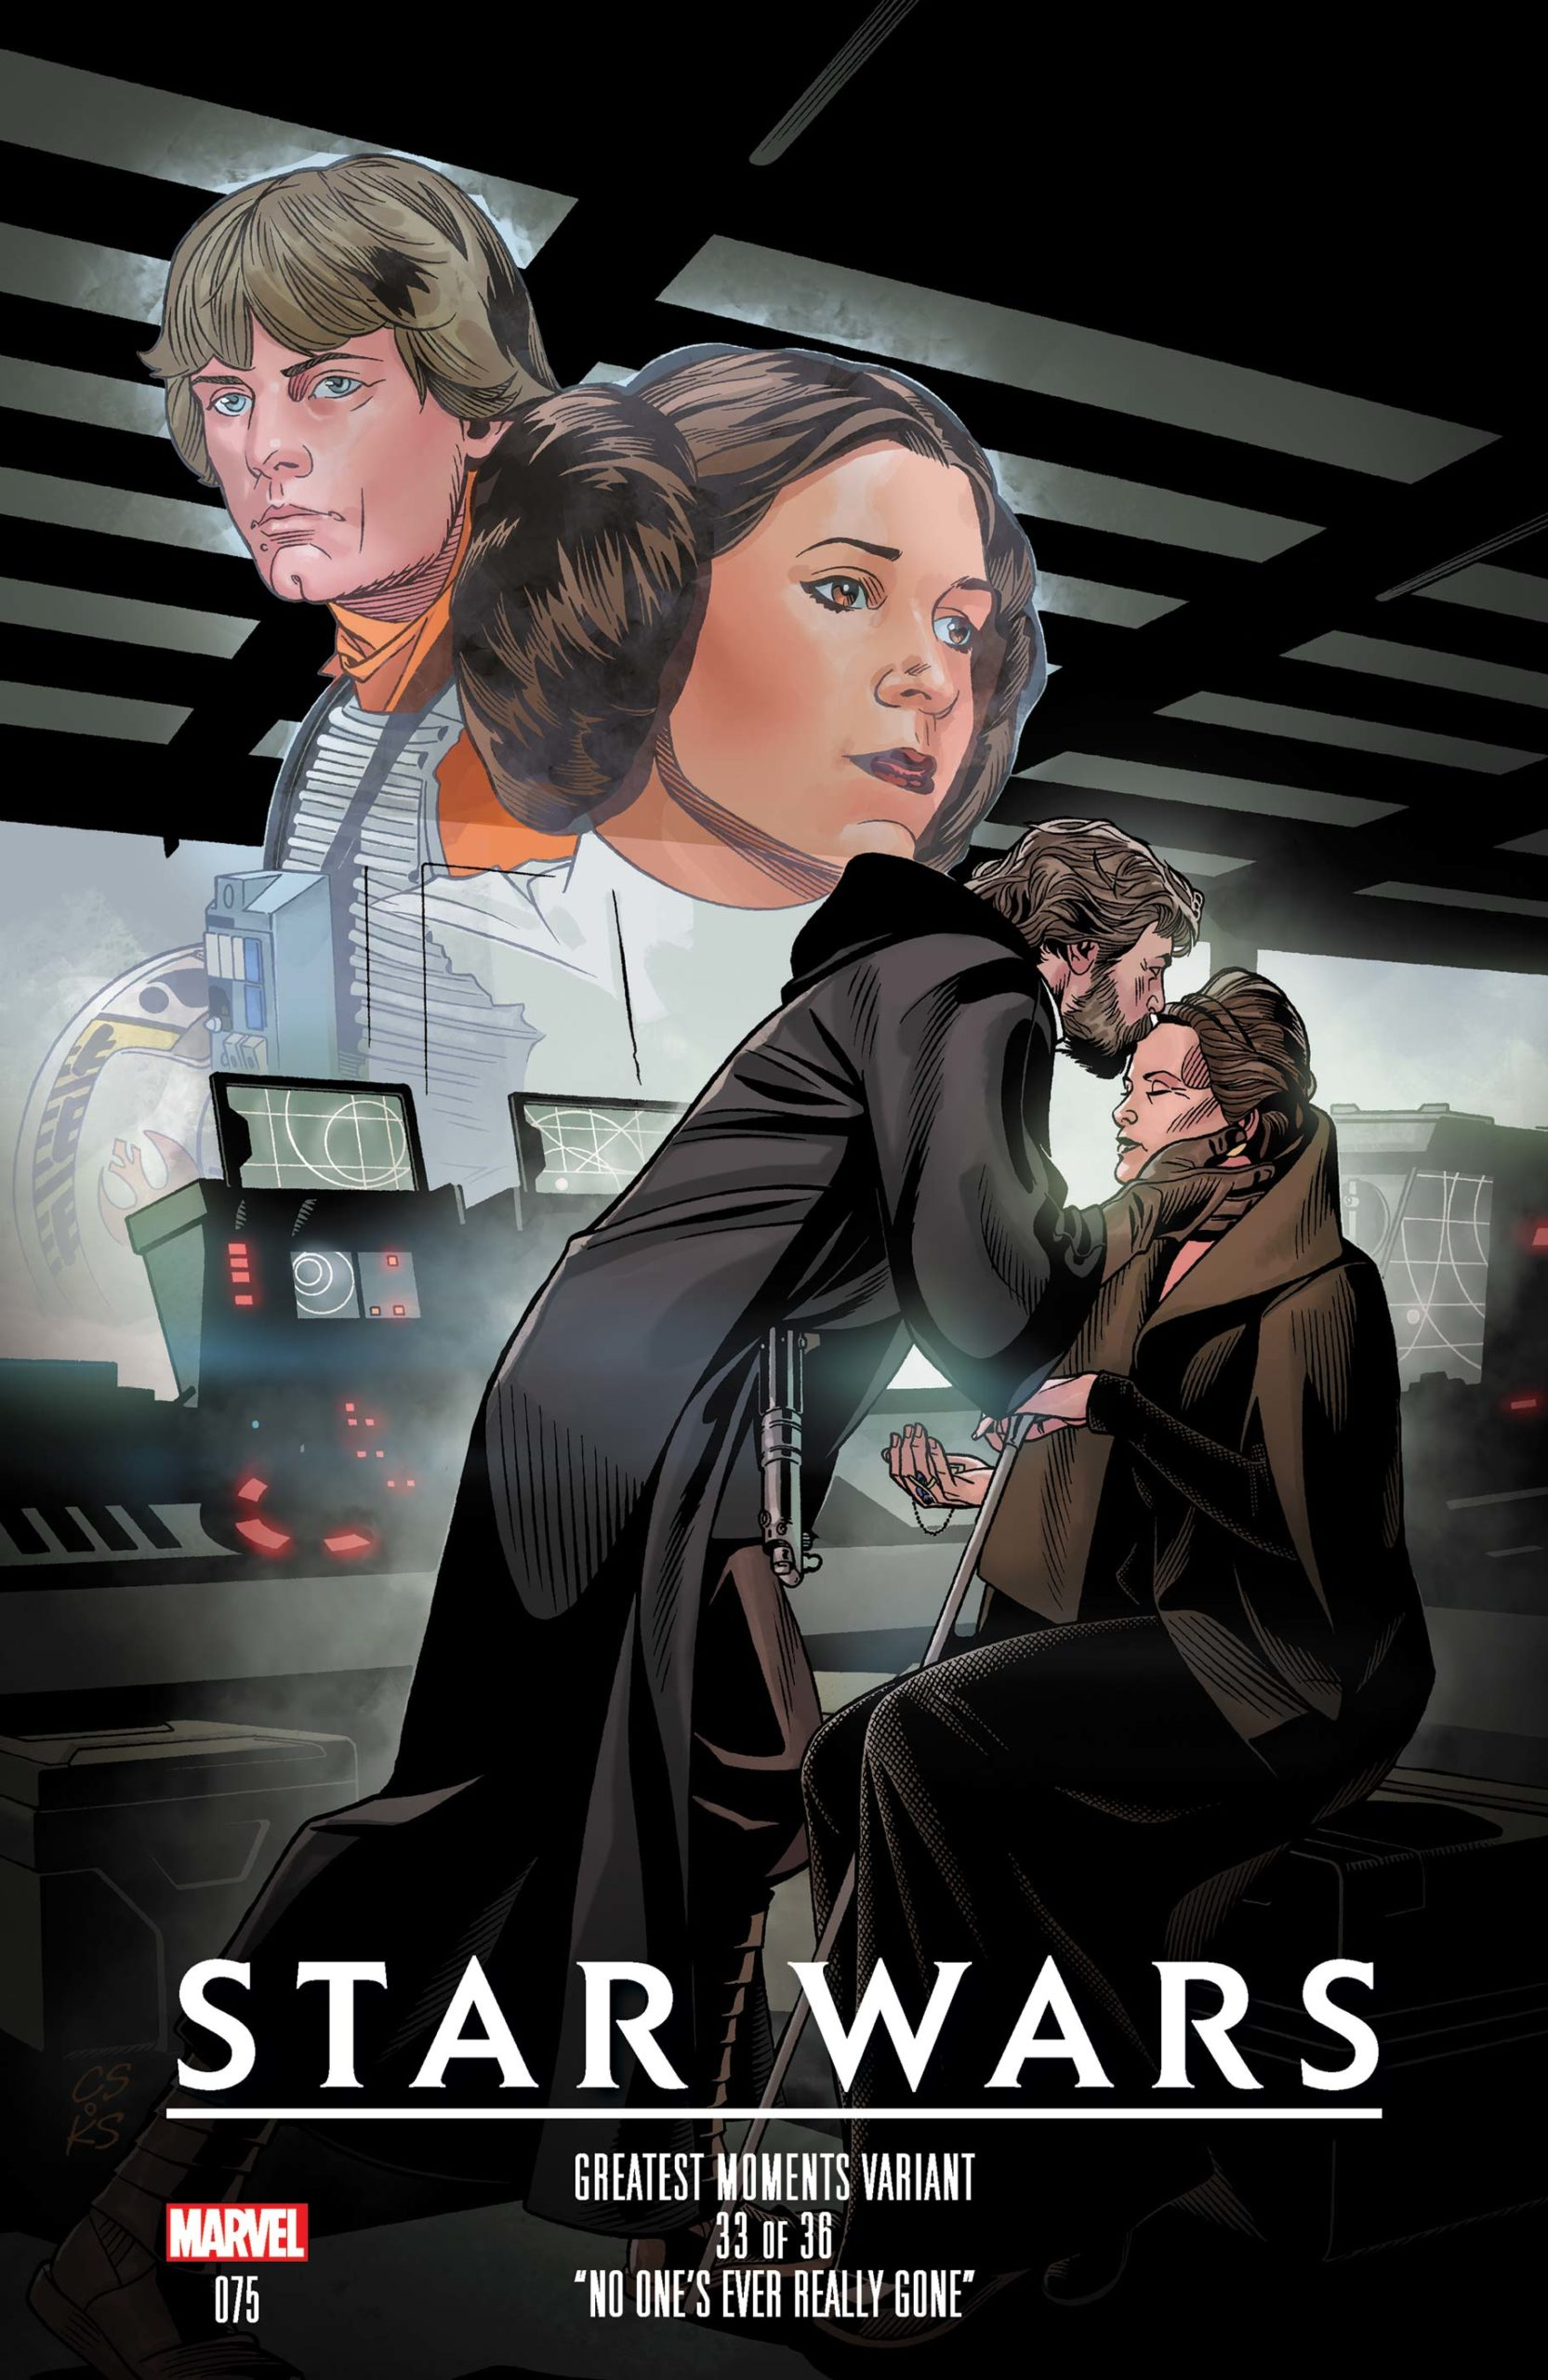 Star Wars #75 (Chris Sprouse Greatest Moments Variant Cover) (20.11.2019)